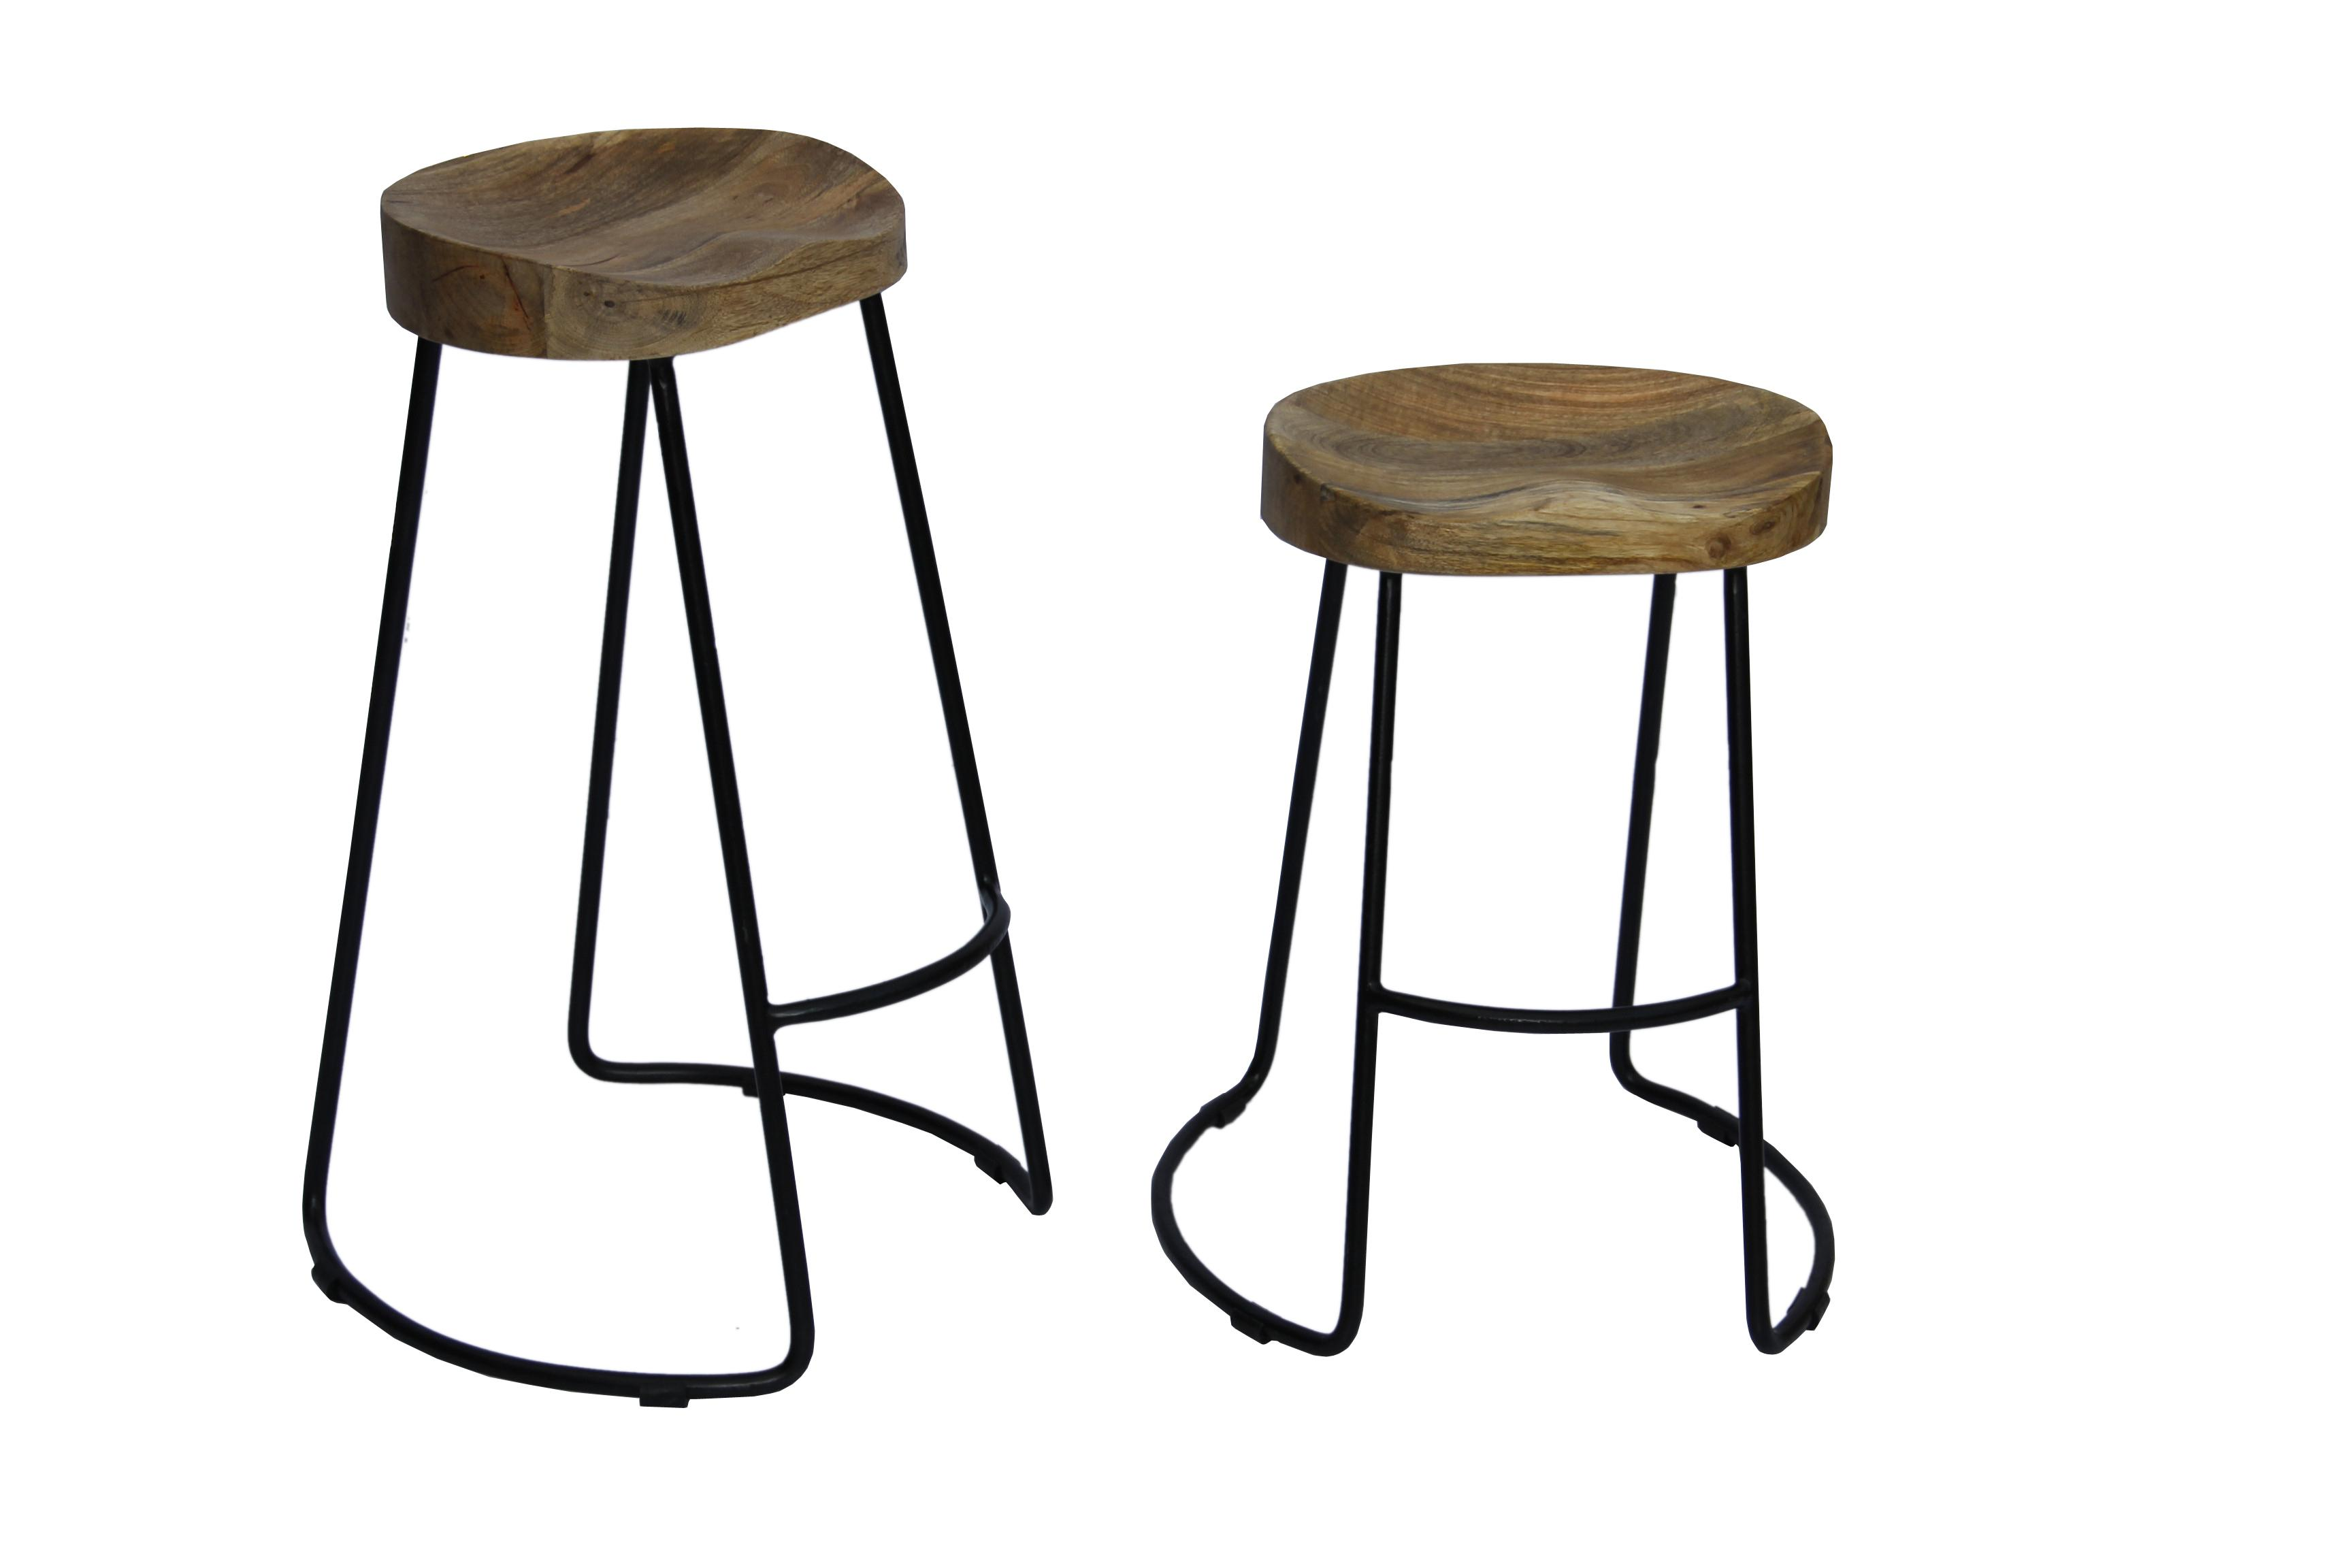 Amazon The Urban Port Antique Colonial Classy Wooden Barstool